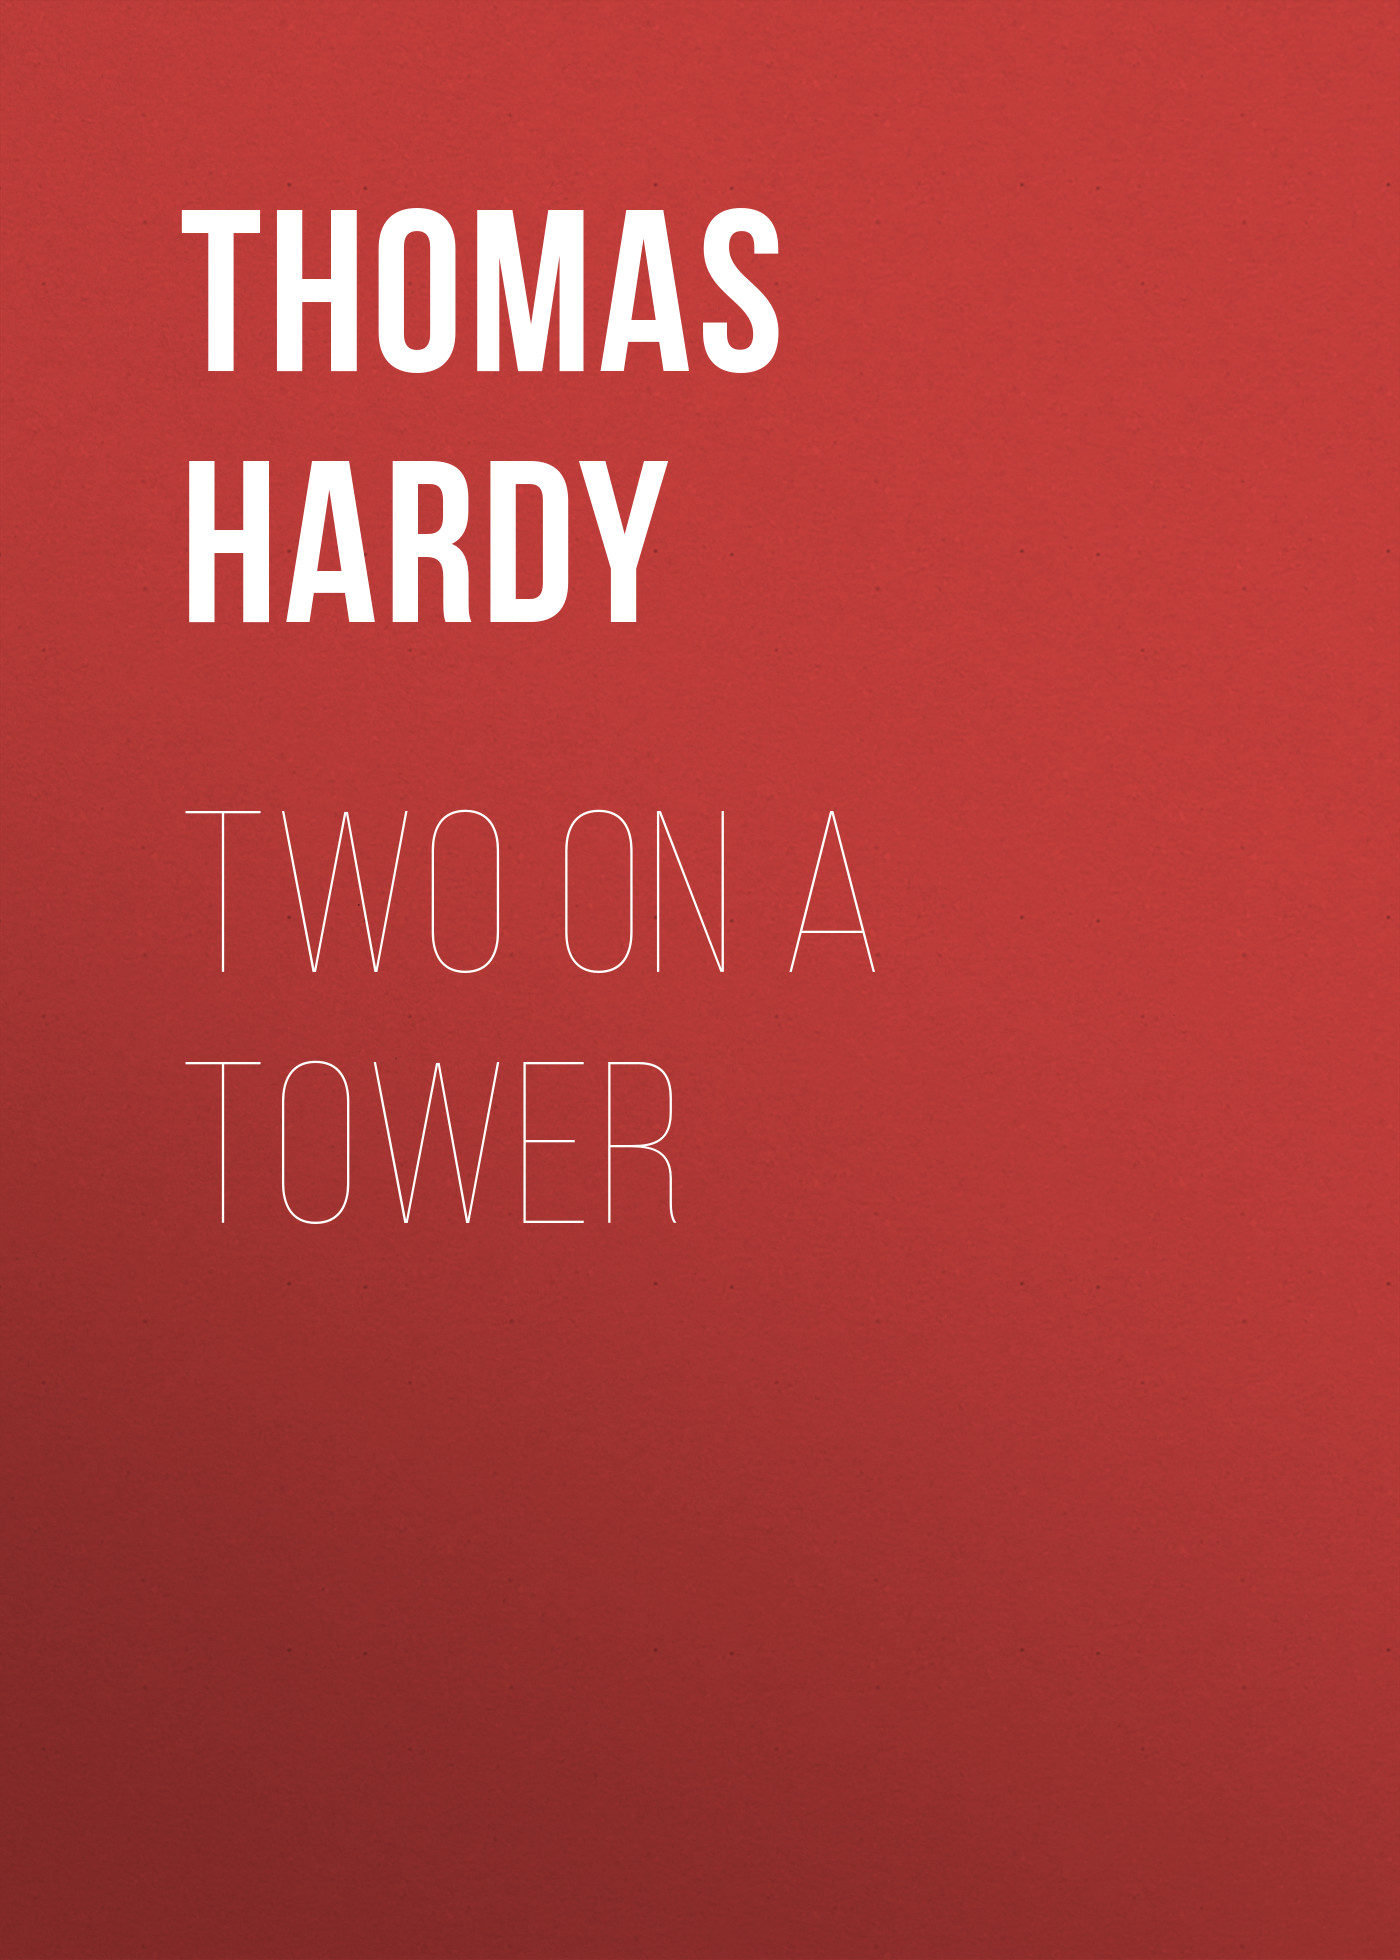 Thomas Hardy Two on a Tower thomas hardy two on a tower